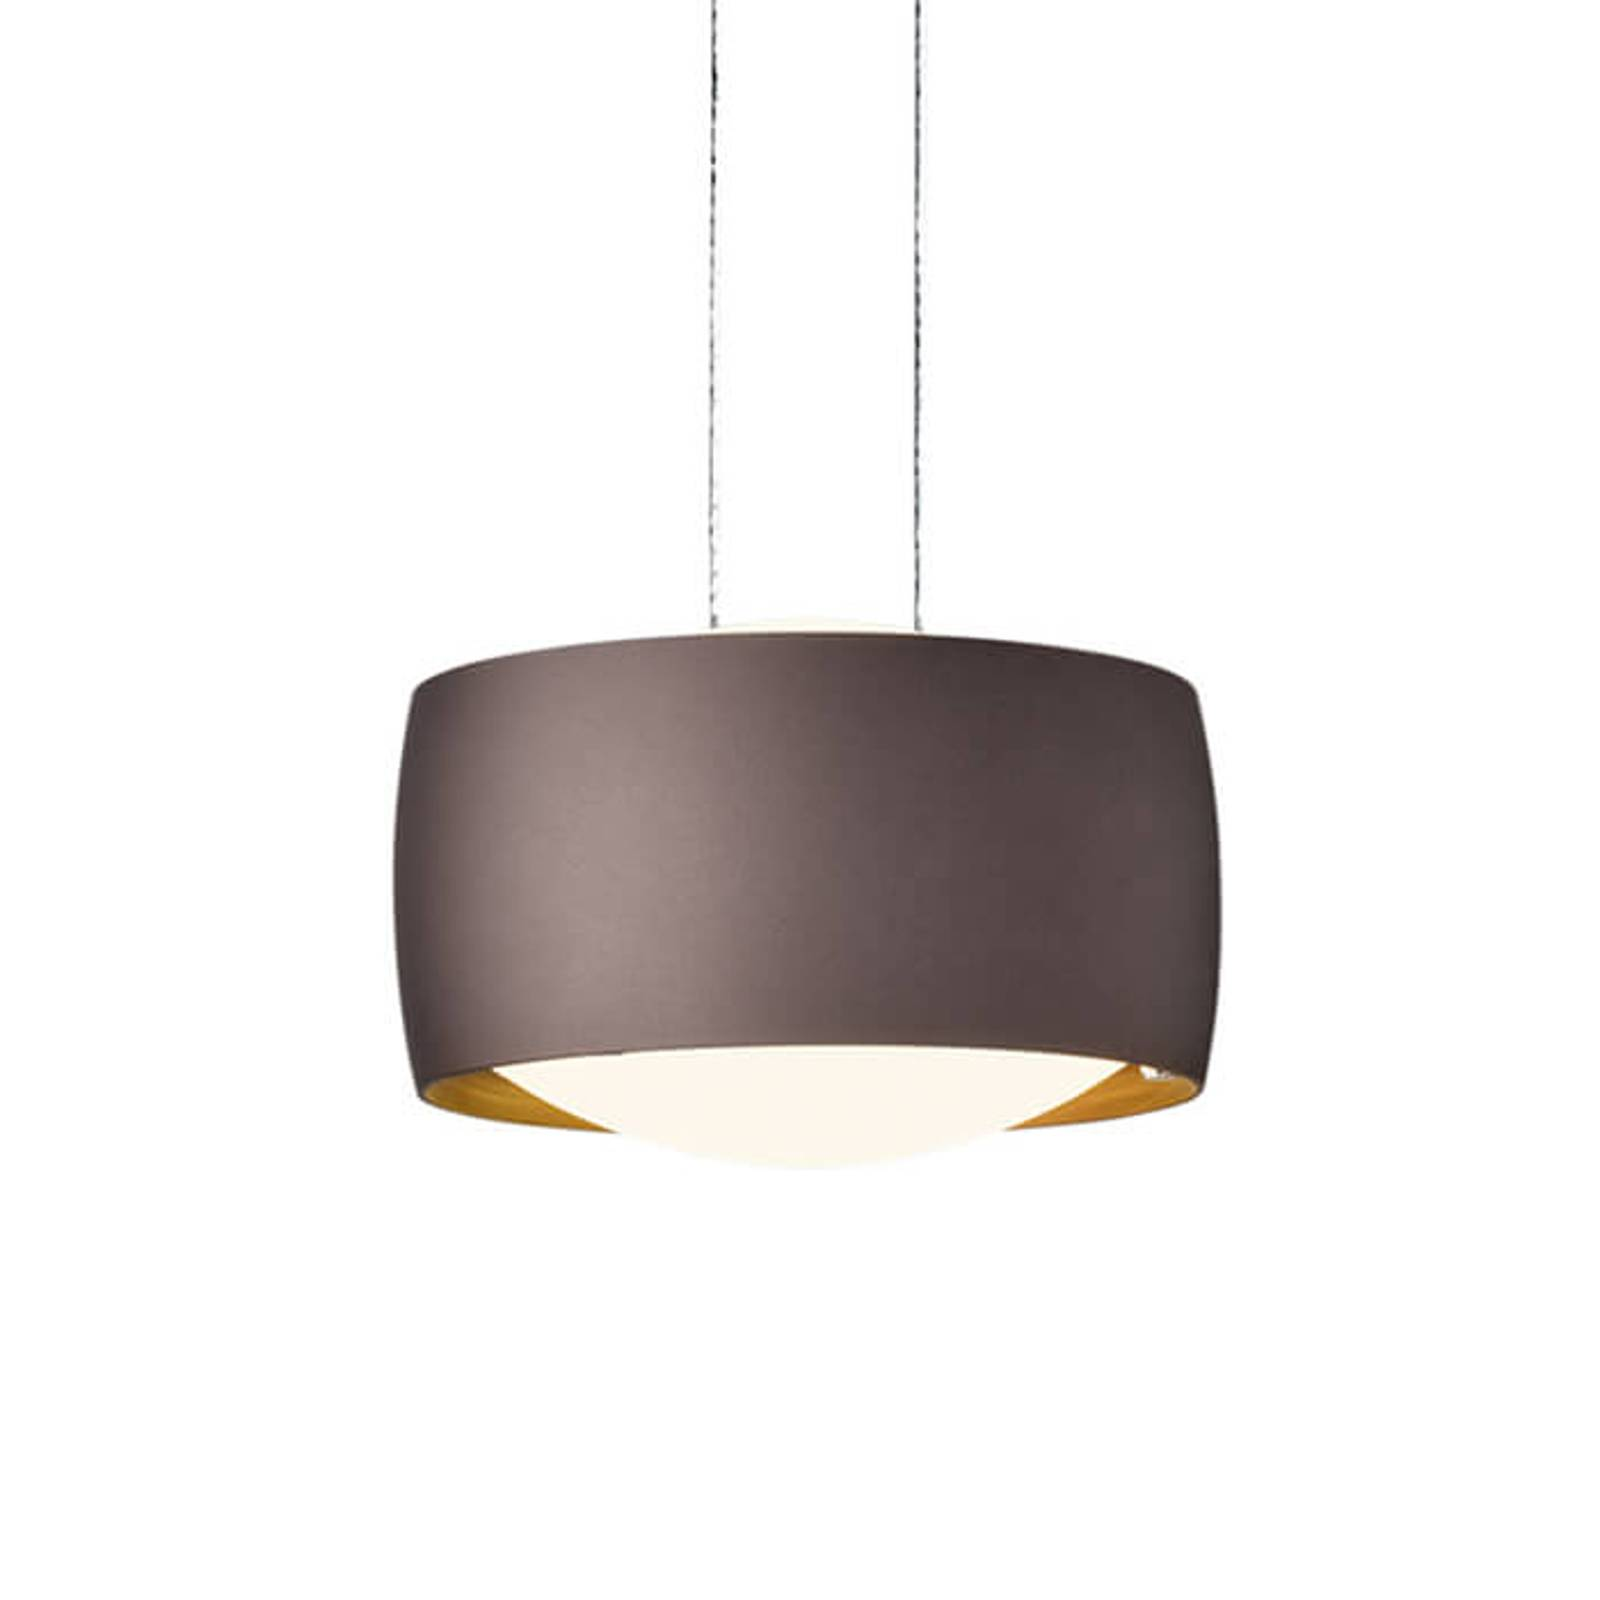 Height-adjustable LED hanging light Grace in brown from Oligo